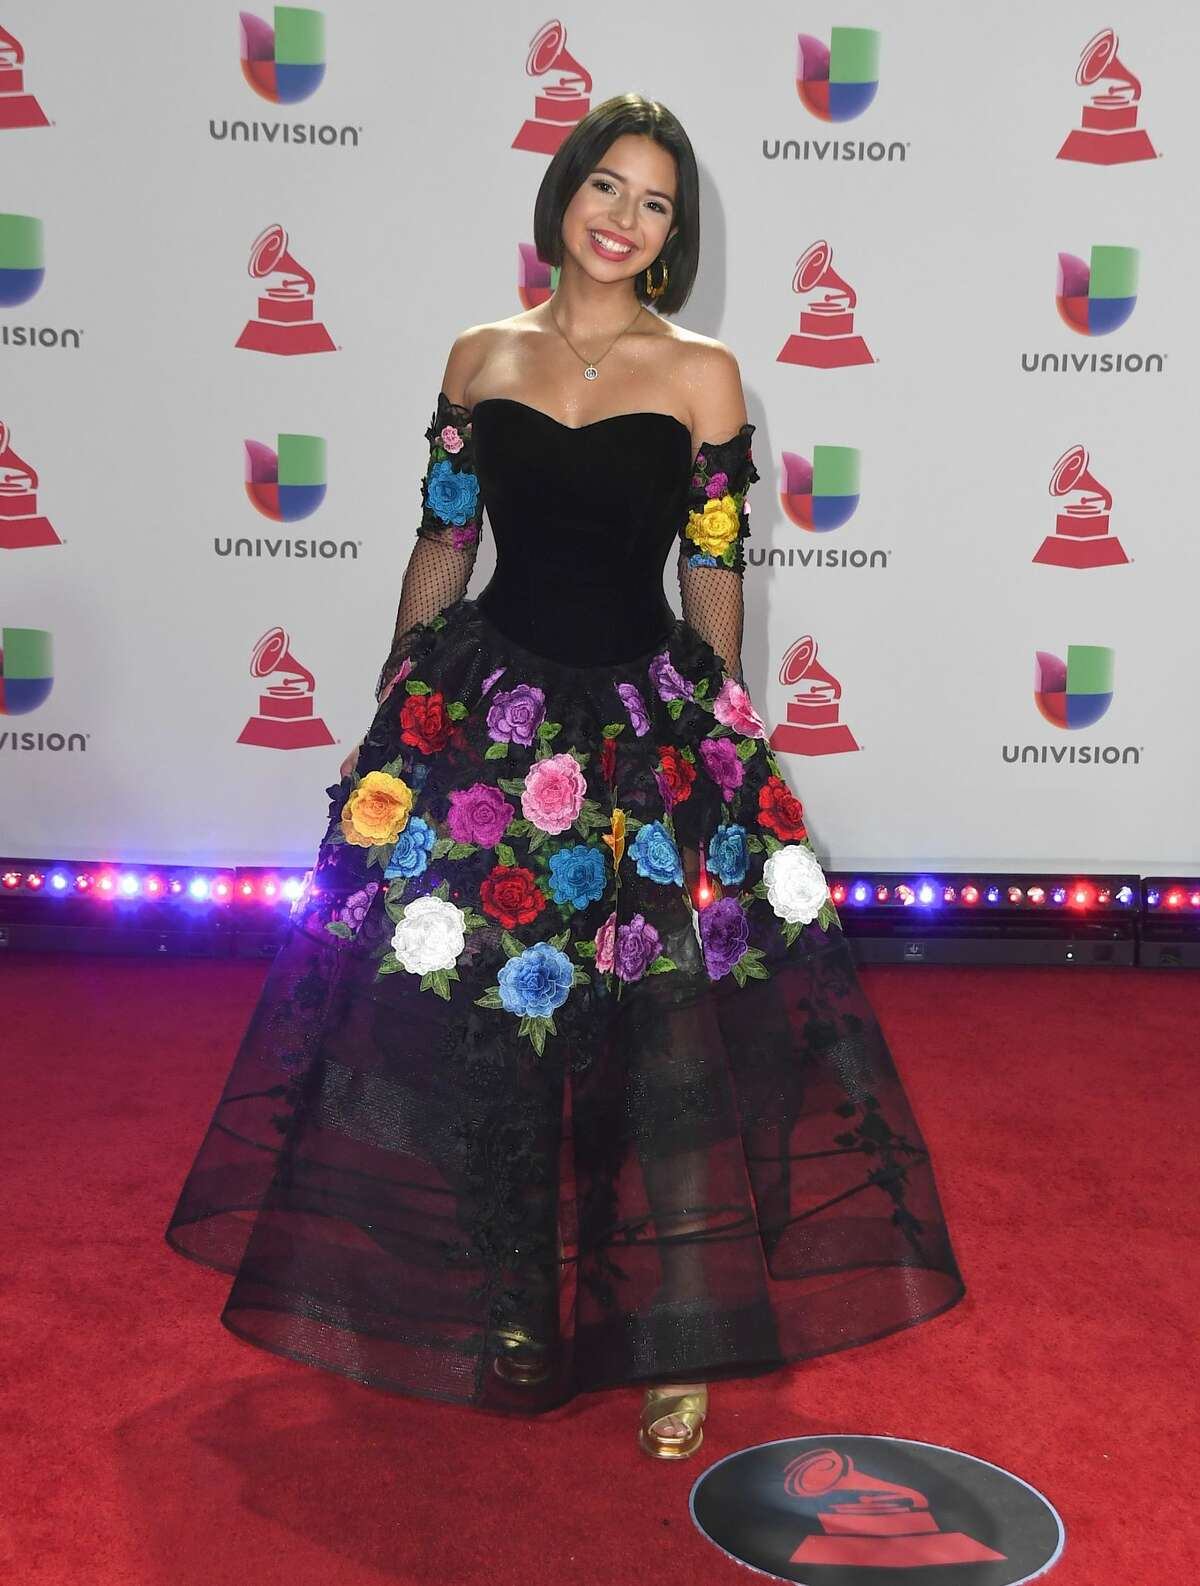 LAS VEGAS, NV - NOVEMBER 15: Angela Aguilar attends the 19th annual Latin GRAMMY Awards at MGM Grand Garden Arena on November 15, 2018 in Las Vegas, Nevada. (Photo by Mindy Small/FilmMagic)